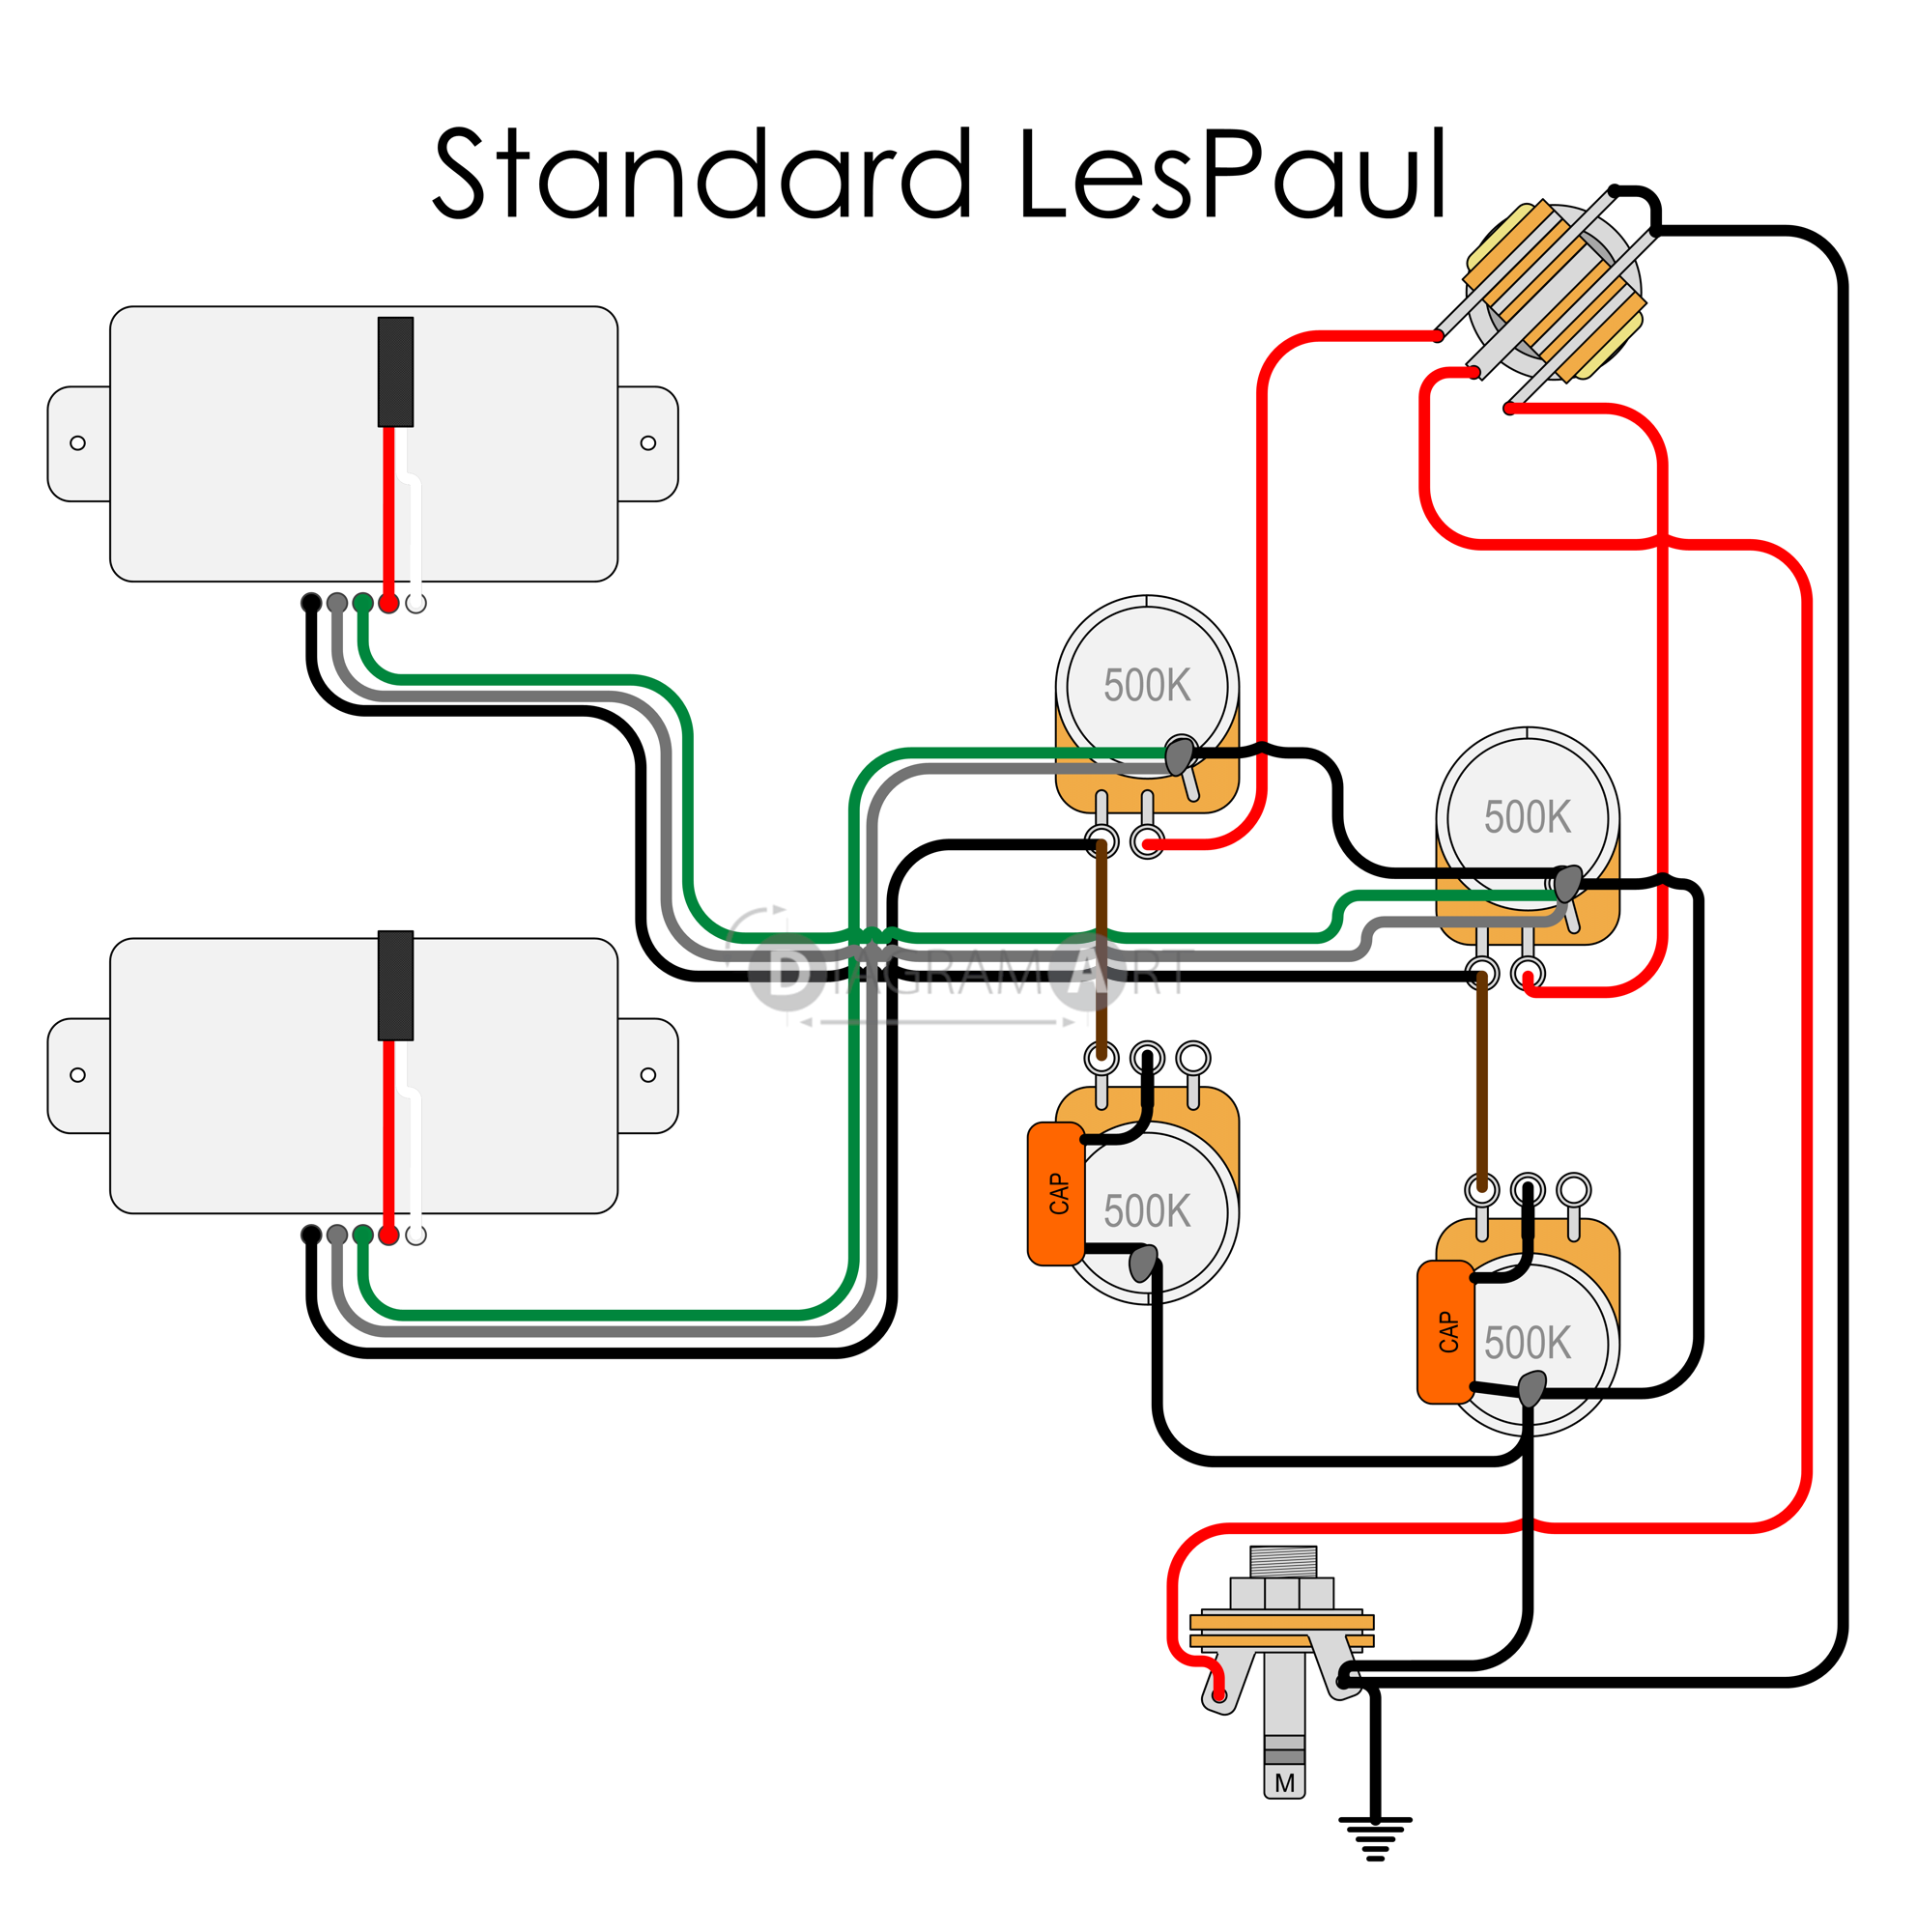 Modern Les Paul Wiring Diagram Trusted Schematics Jimmy Page Guitar 2012 Another Diagrams U2022 Schematic